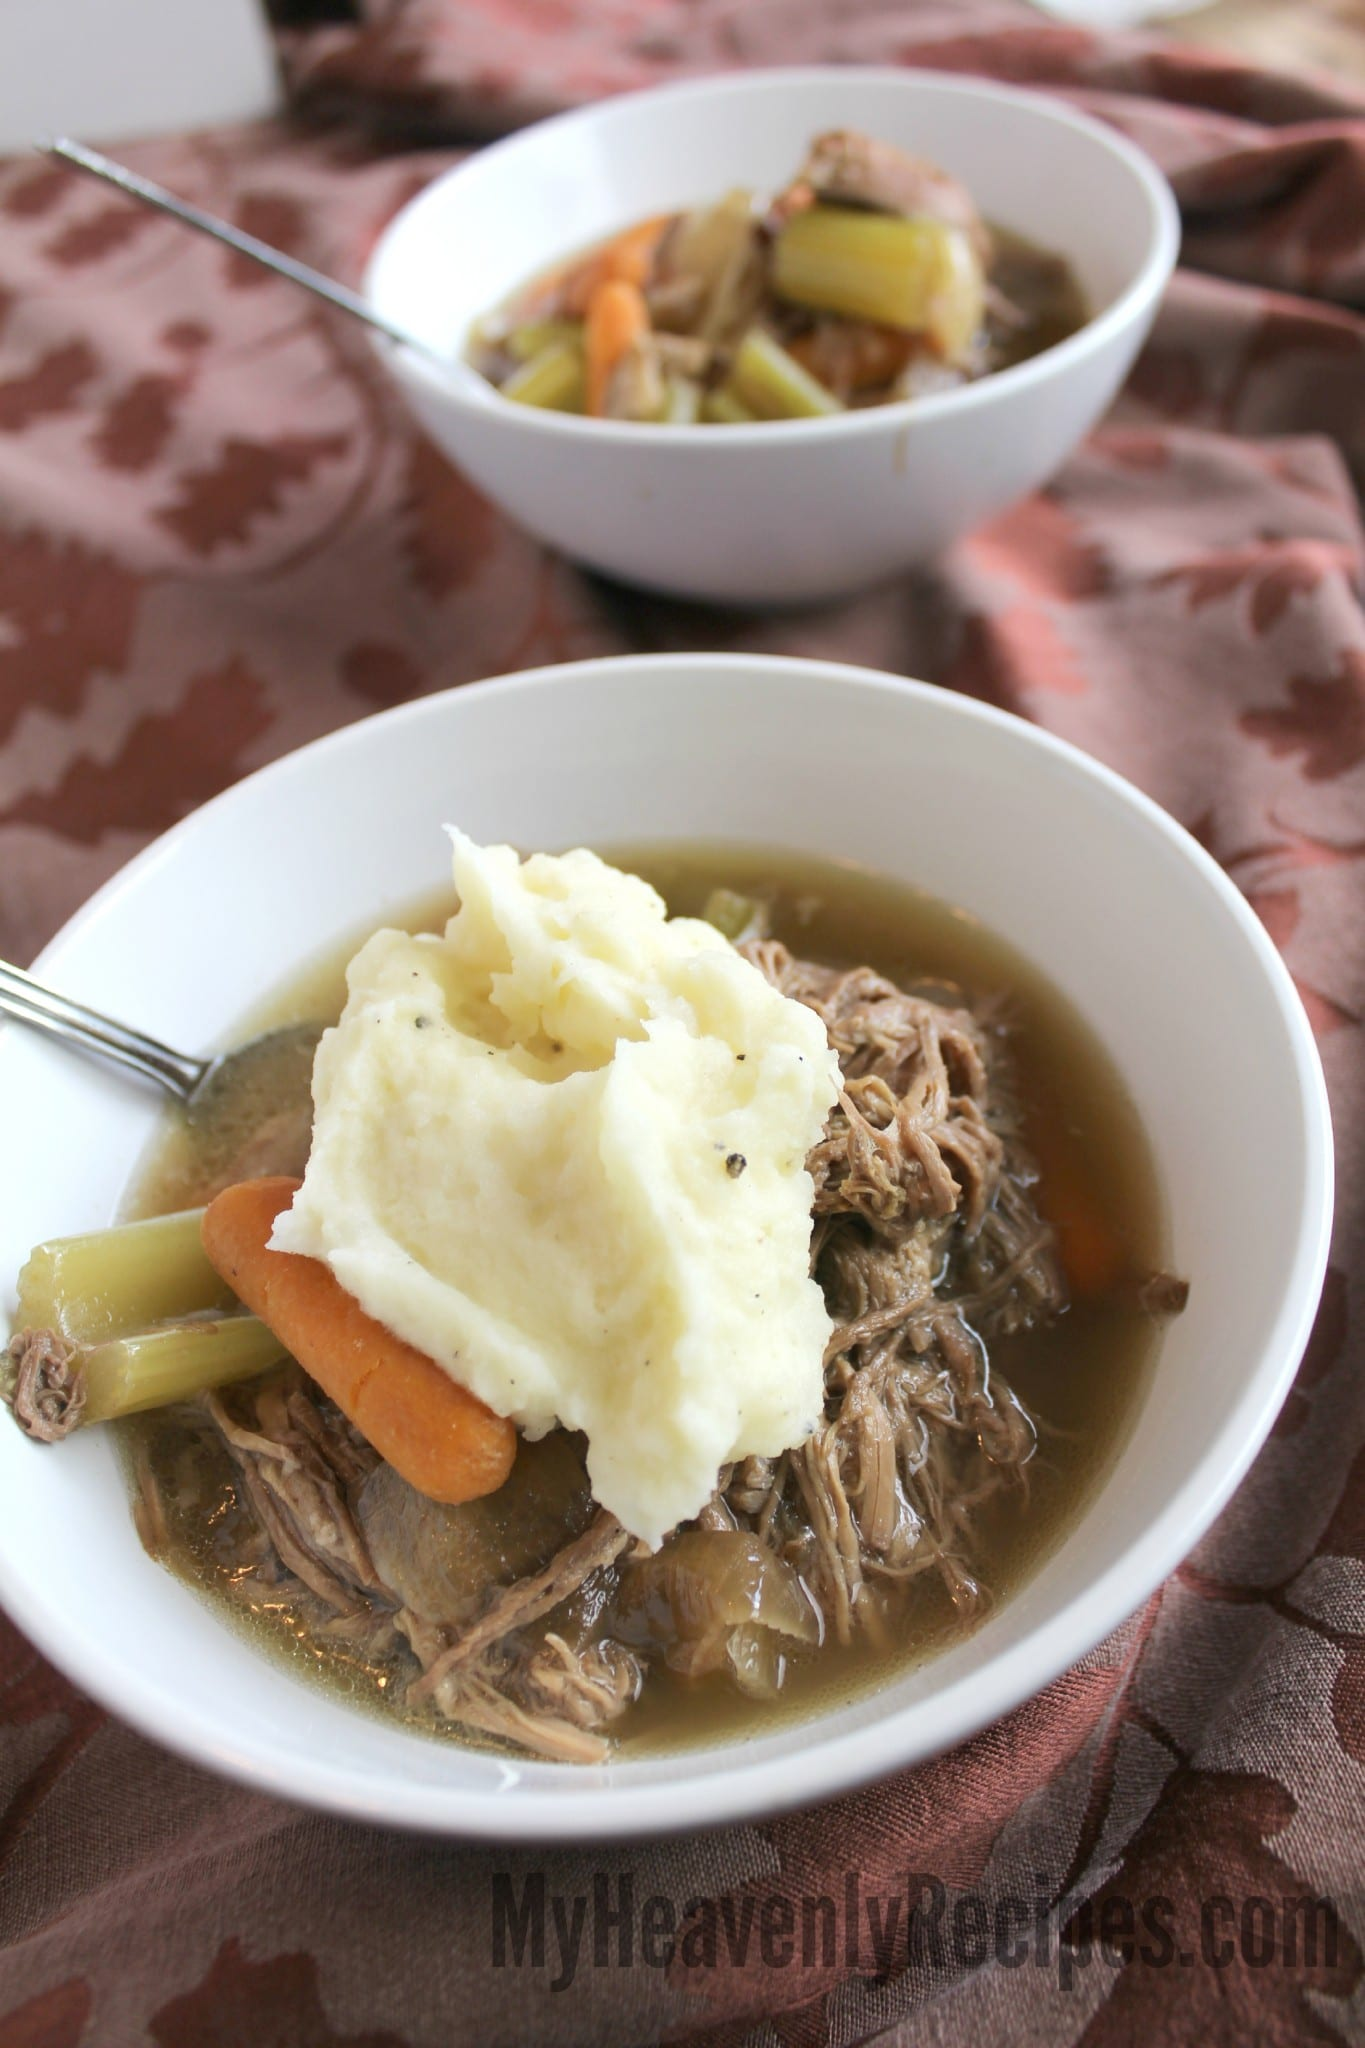 Crock-Pot Pot Roast Recipe - My Heavenly Recipes